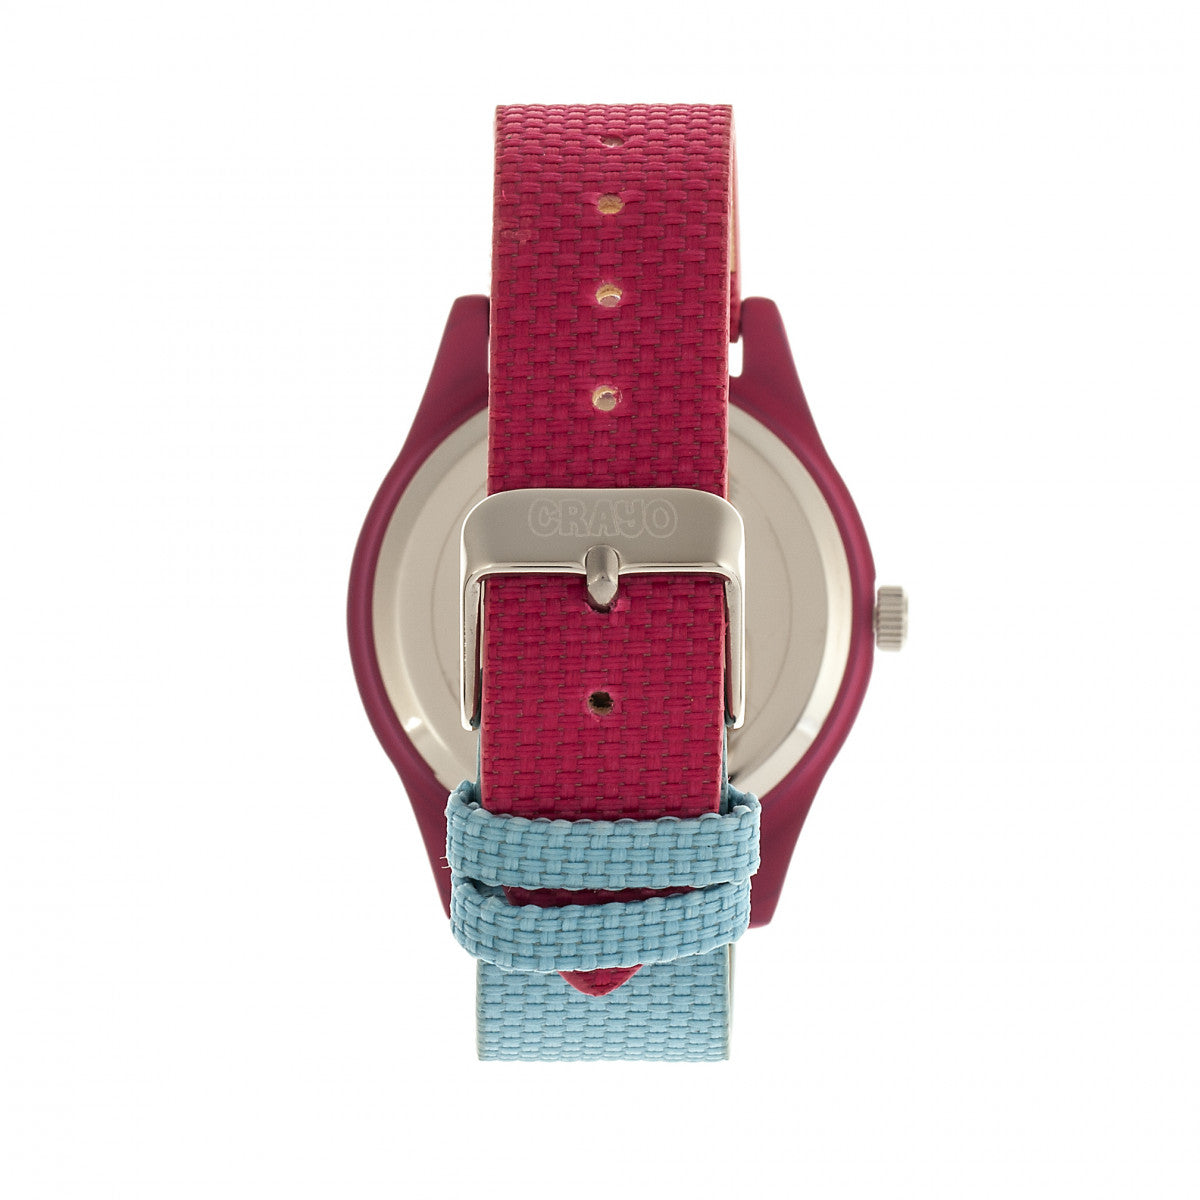 Crayo Pleasant Unisex Watch - Powder Blue/Fuchsia - CRACR3905